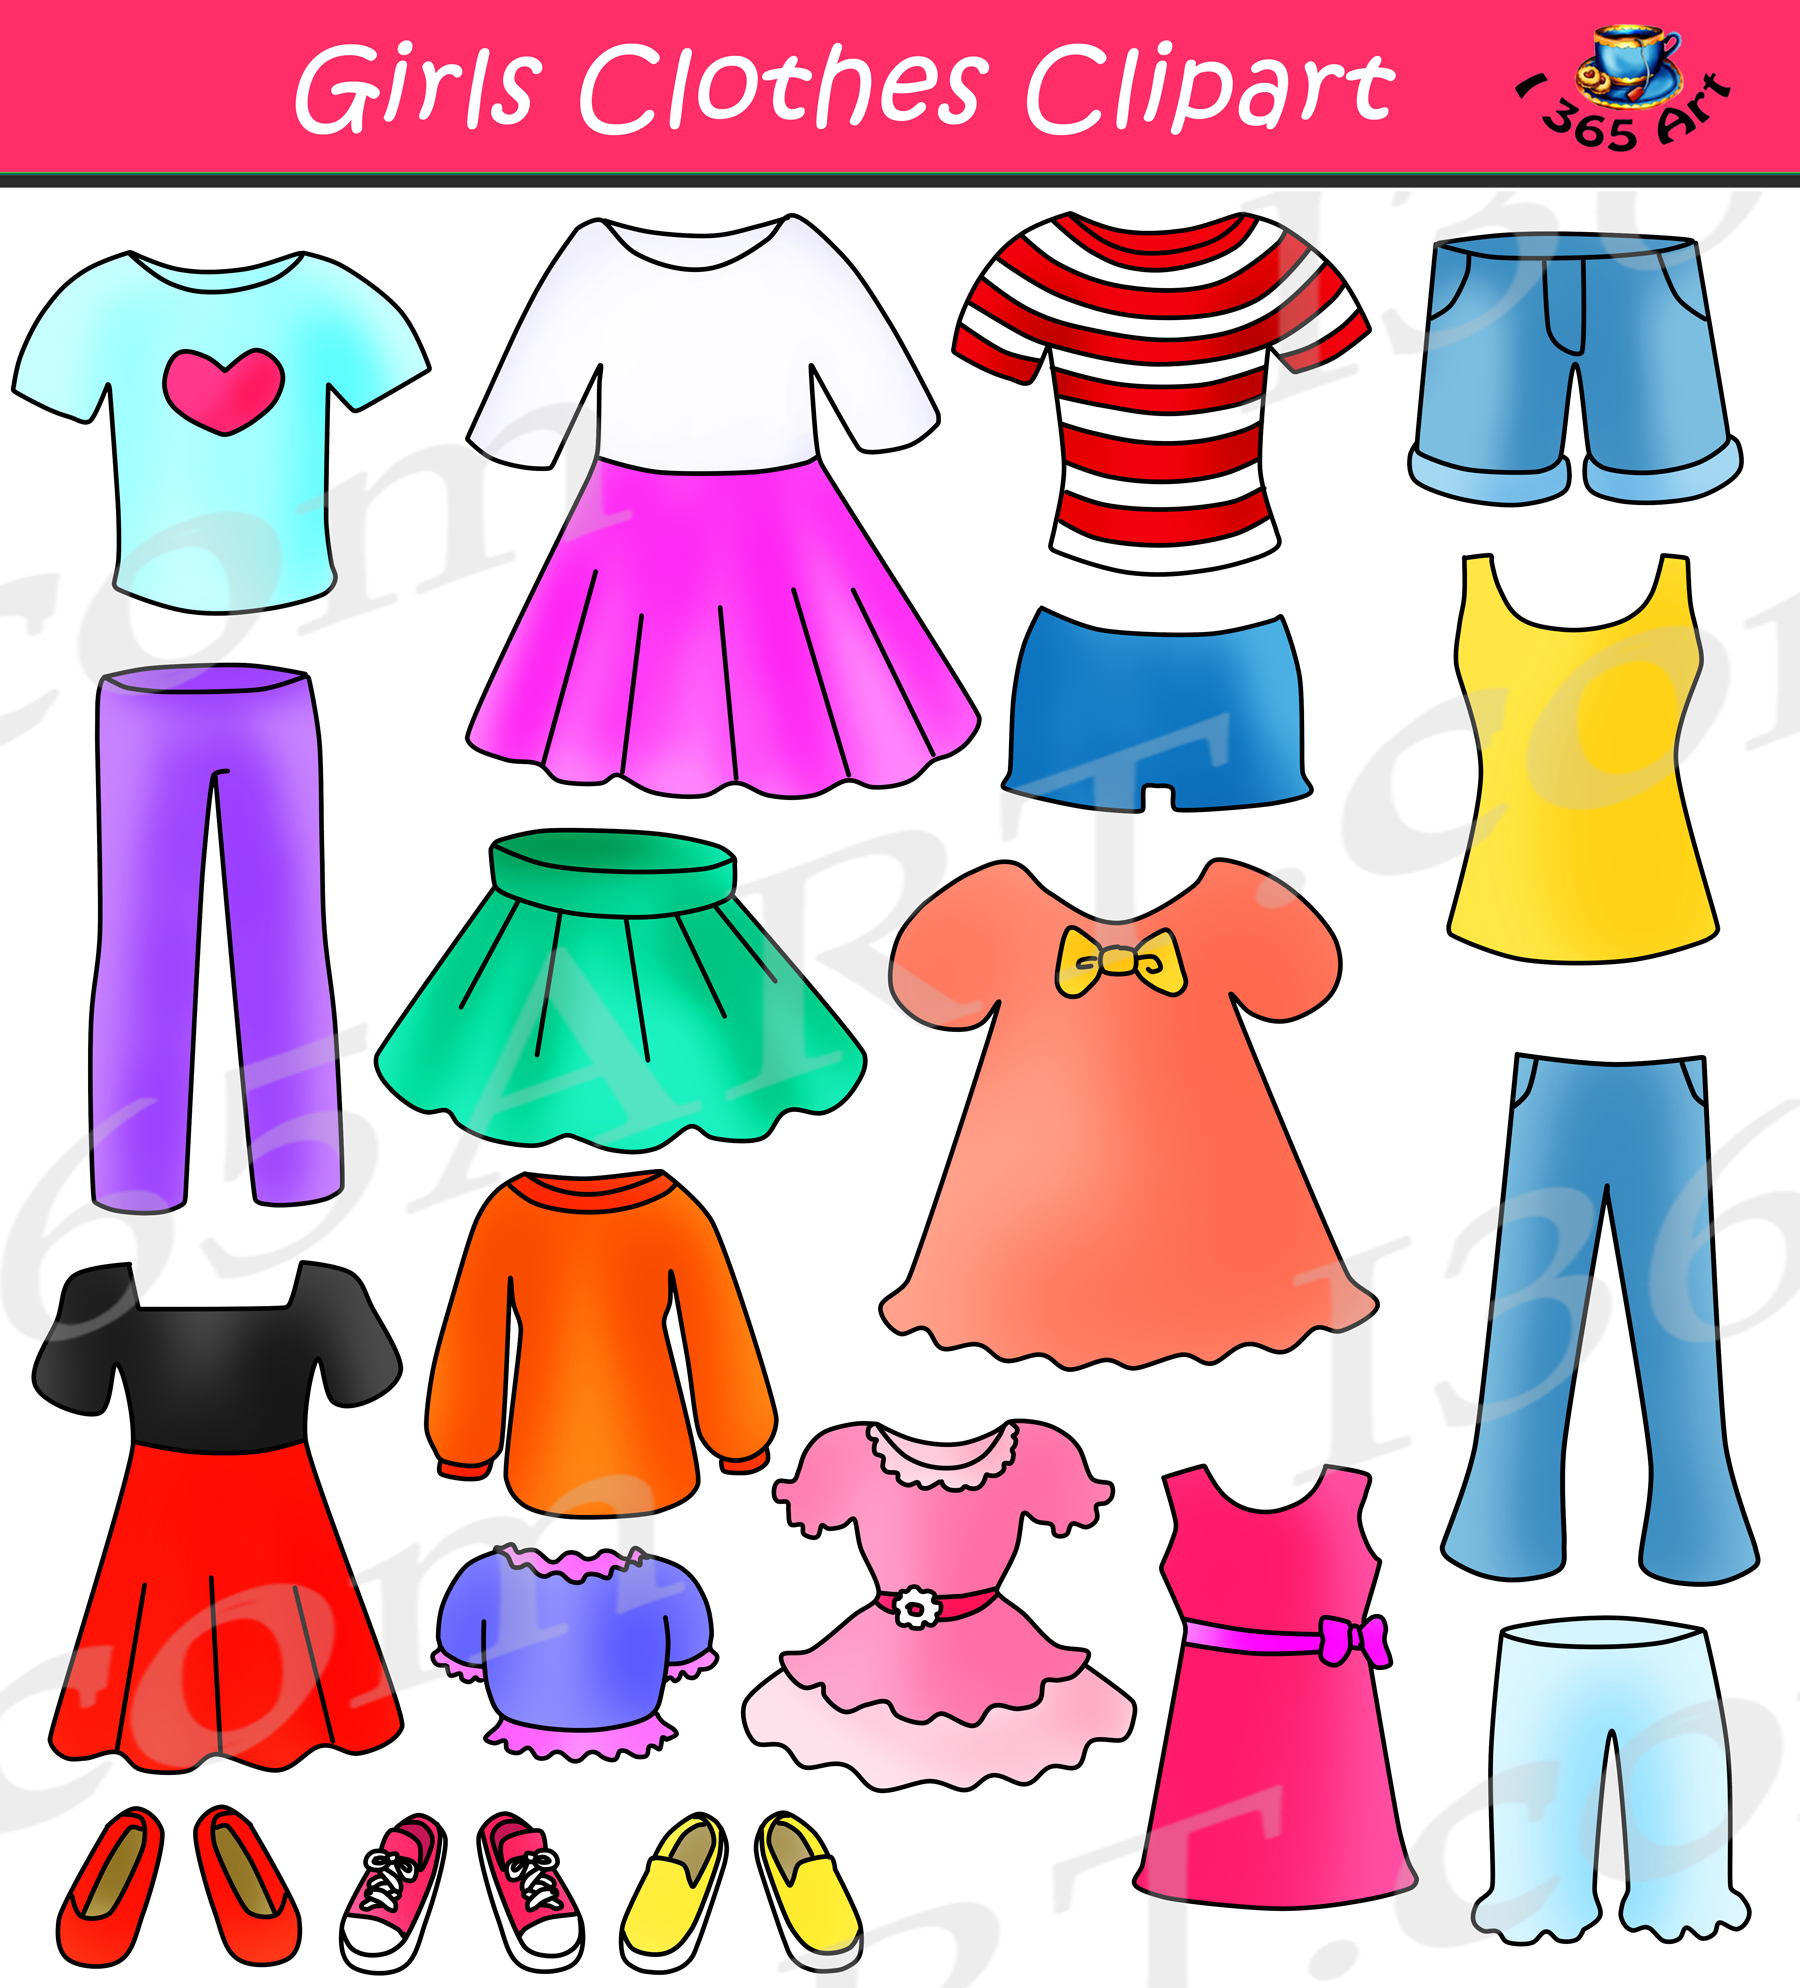 Clothing Clipart Clothing Transparent Free For Download